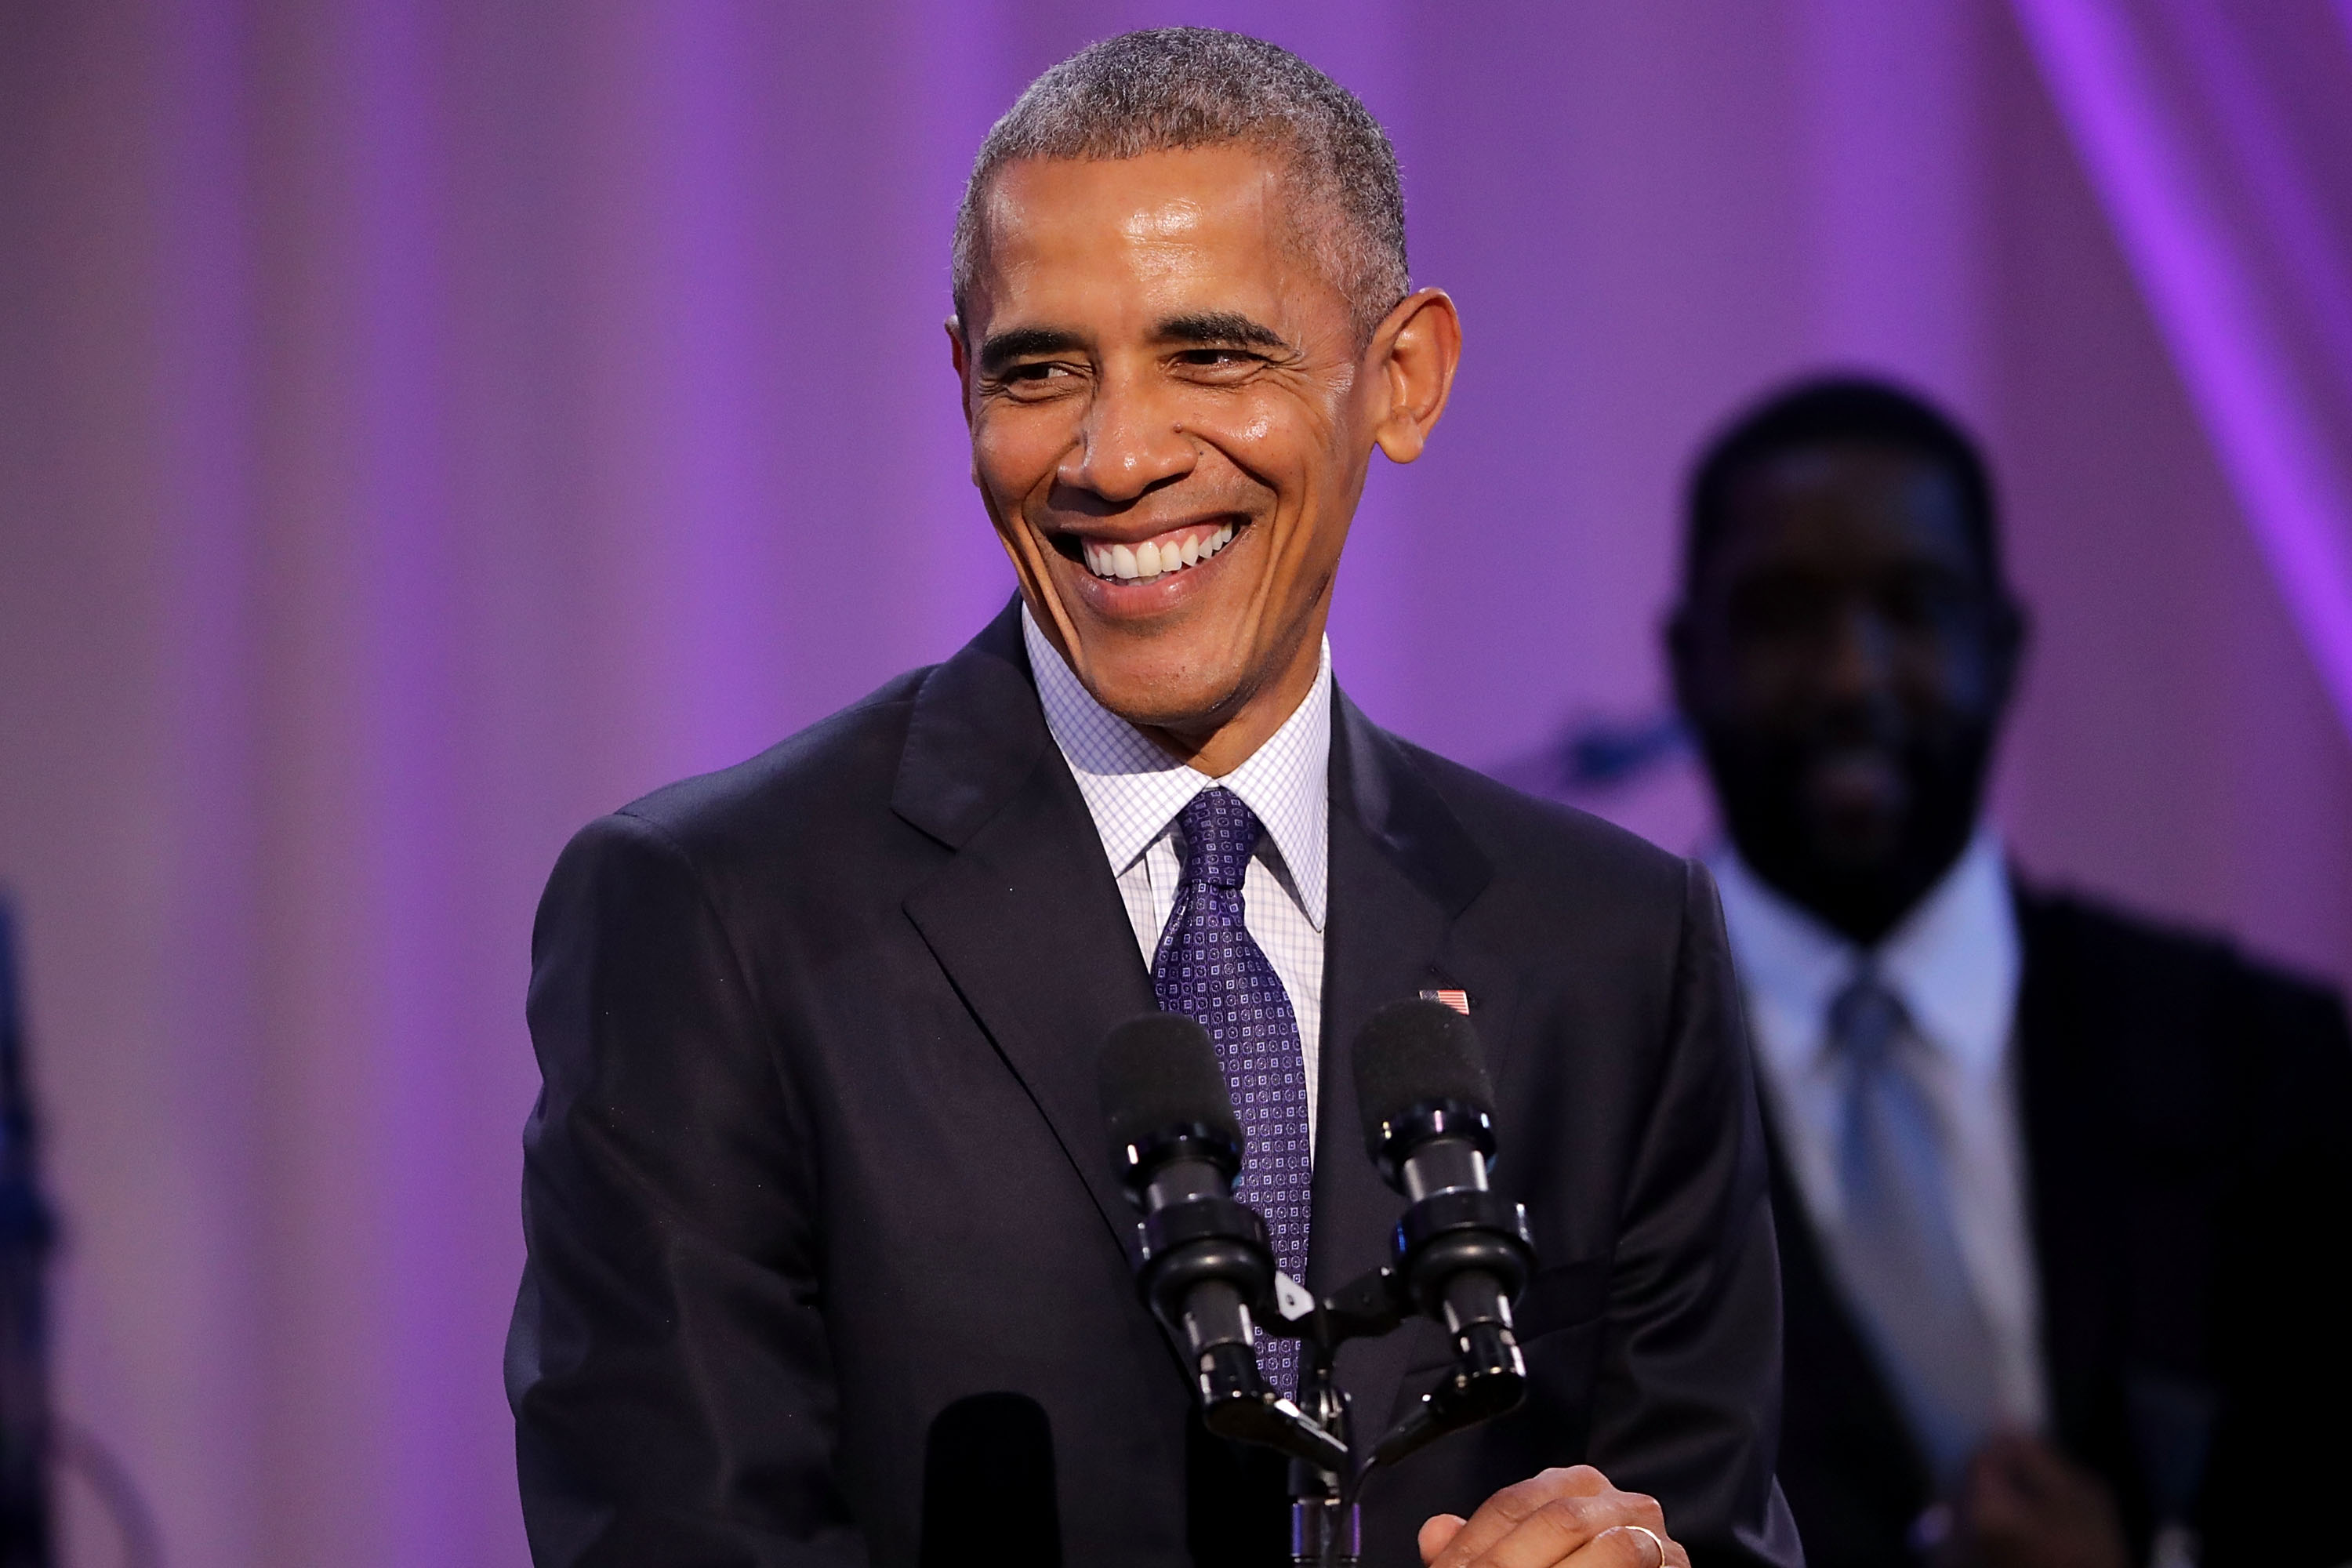 President Barack Obama during the BET's Love and Happiness: A Musical Experience on the South Lawn of the White House on Oct. 21, 2016, in Washington, D.C.